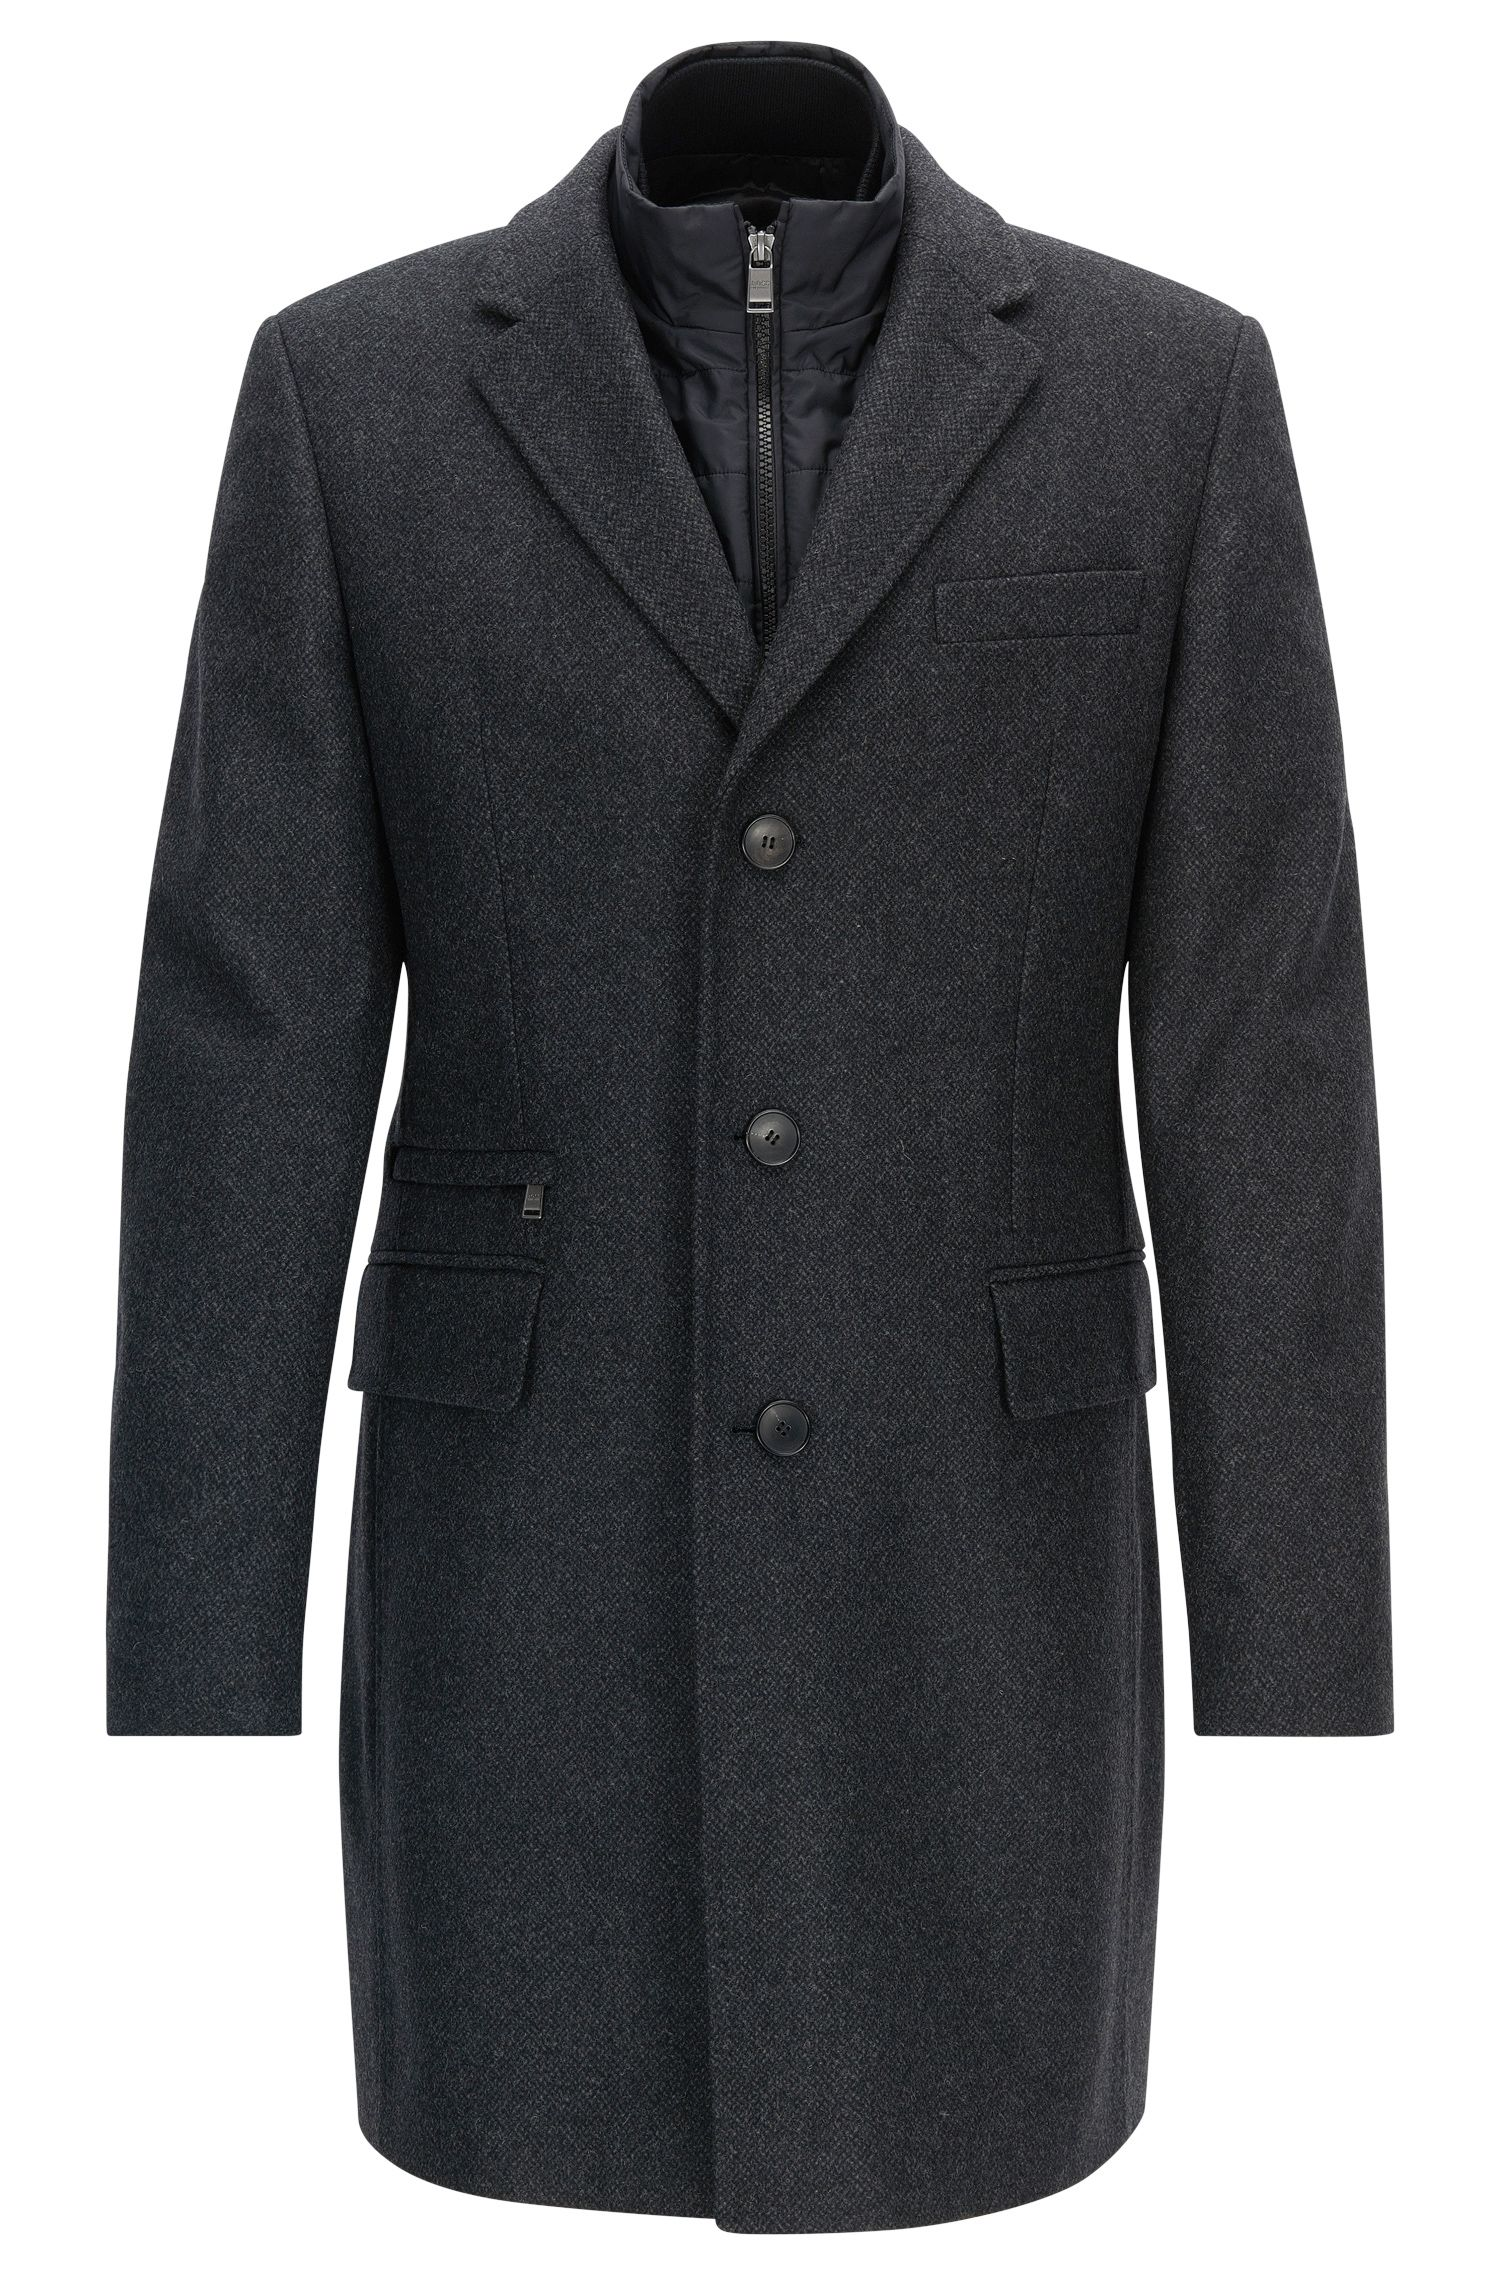 Cappotto slim fit in misto lana vergine con gilet